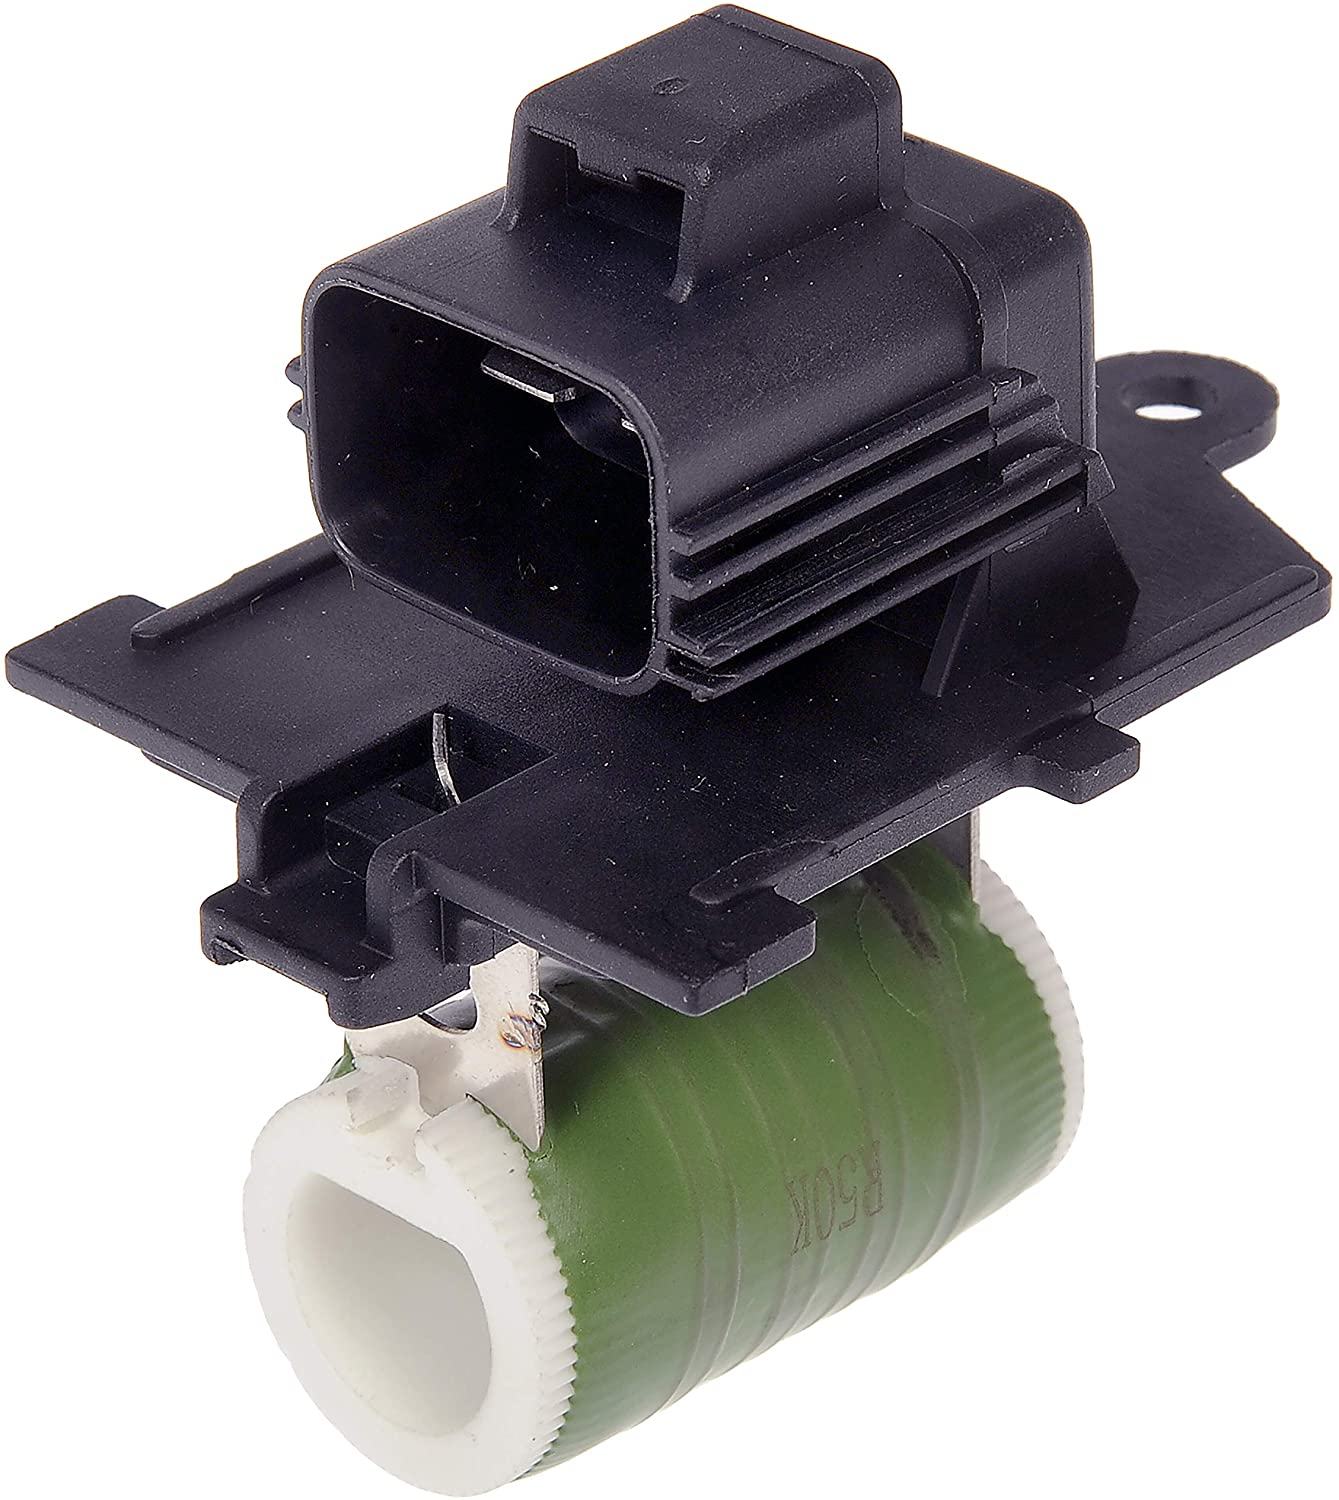 Dorman 921-300 Engine Cooling Fan Motor Relay for Select Chrysler/Dodge Models